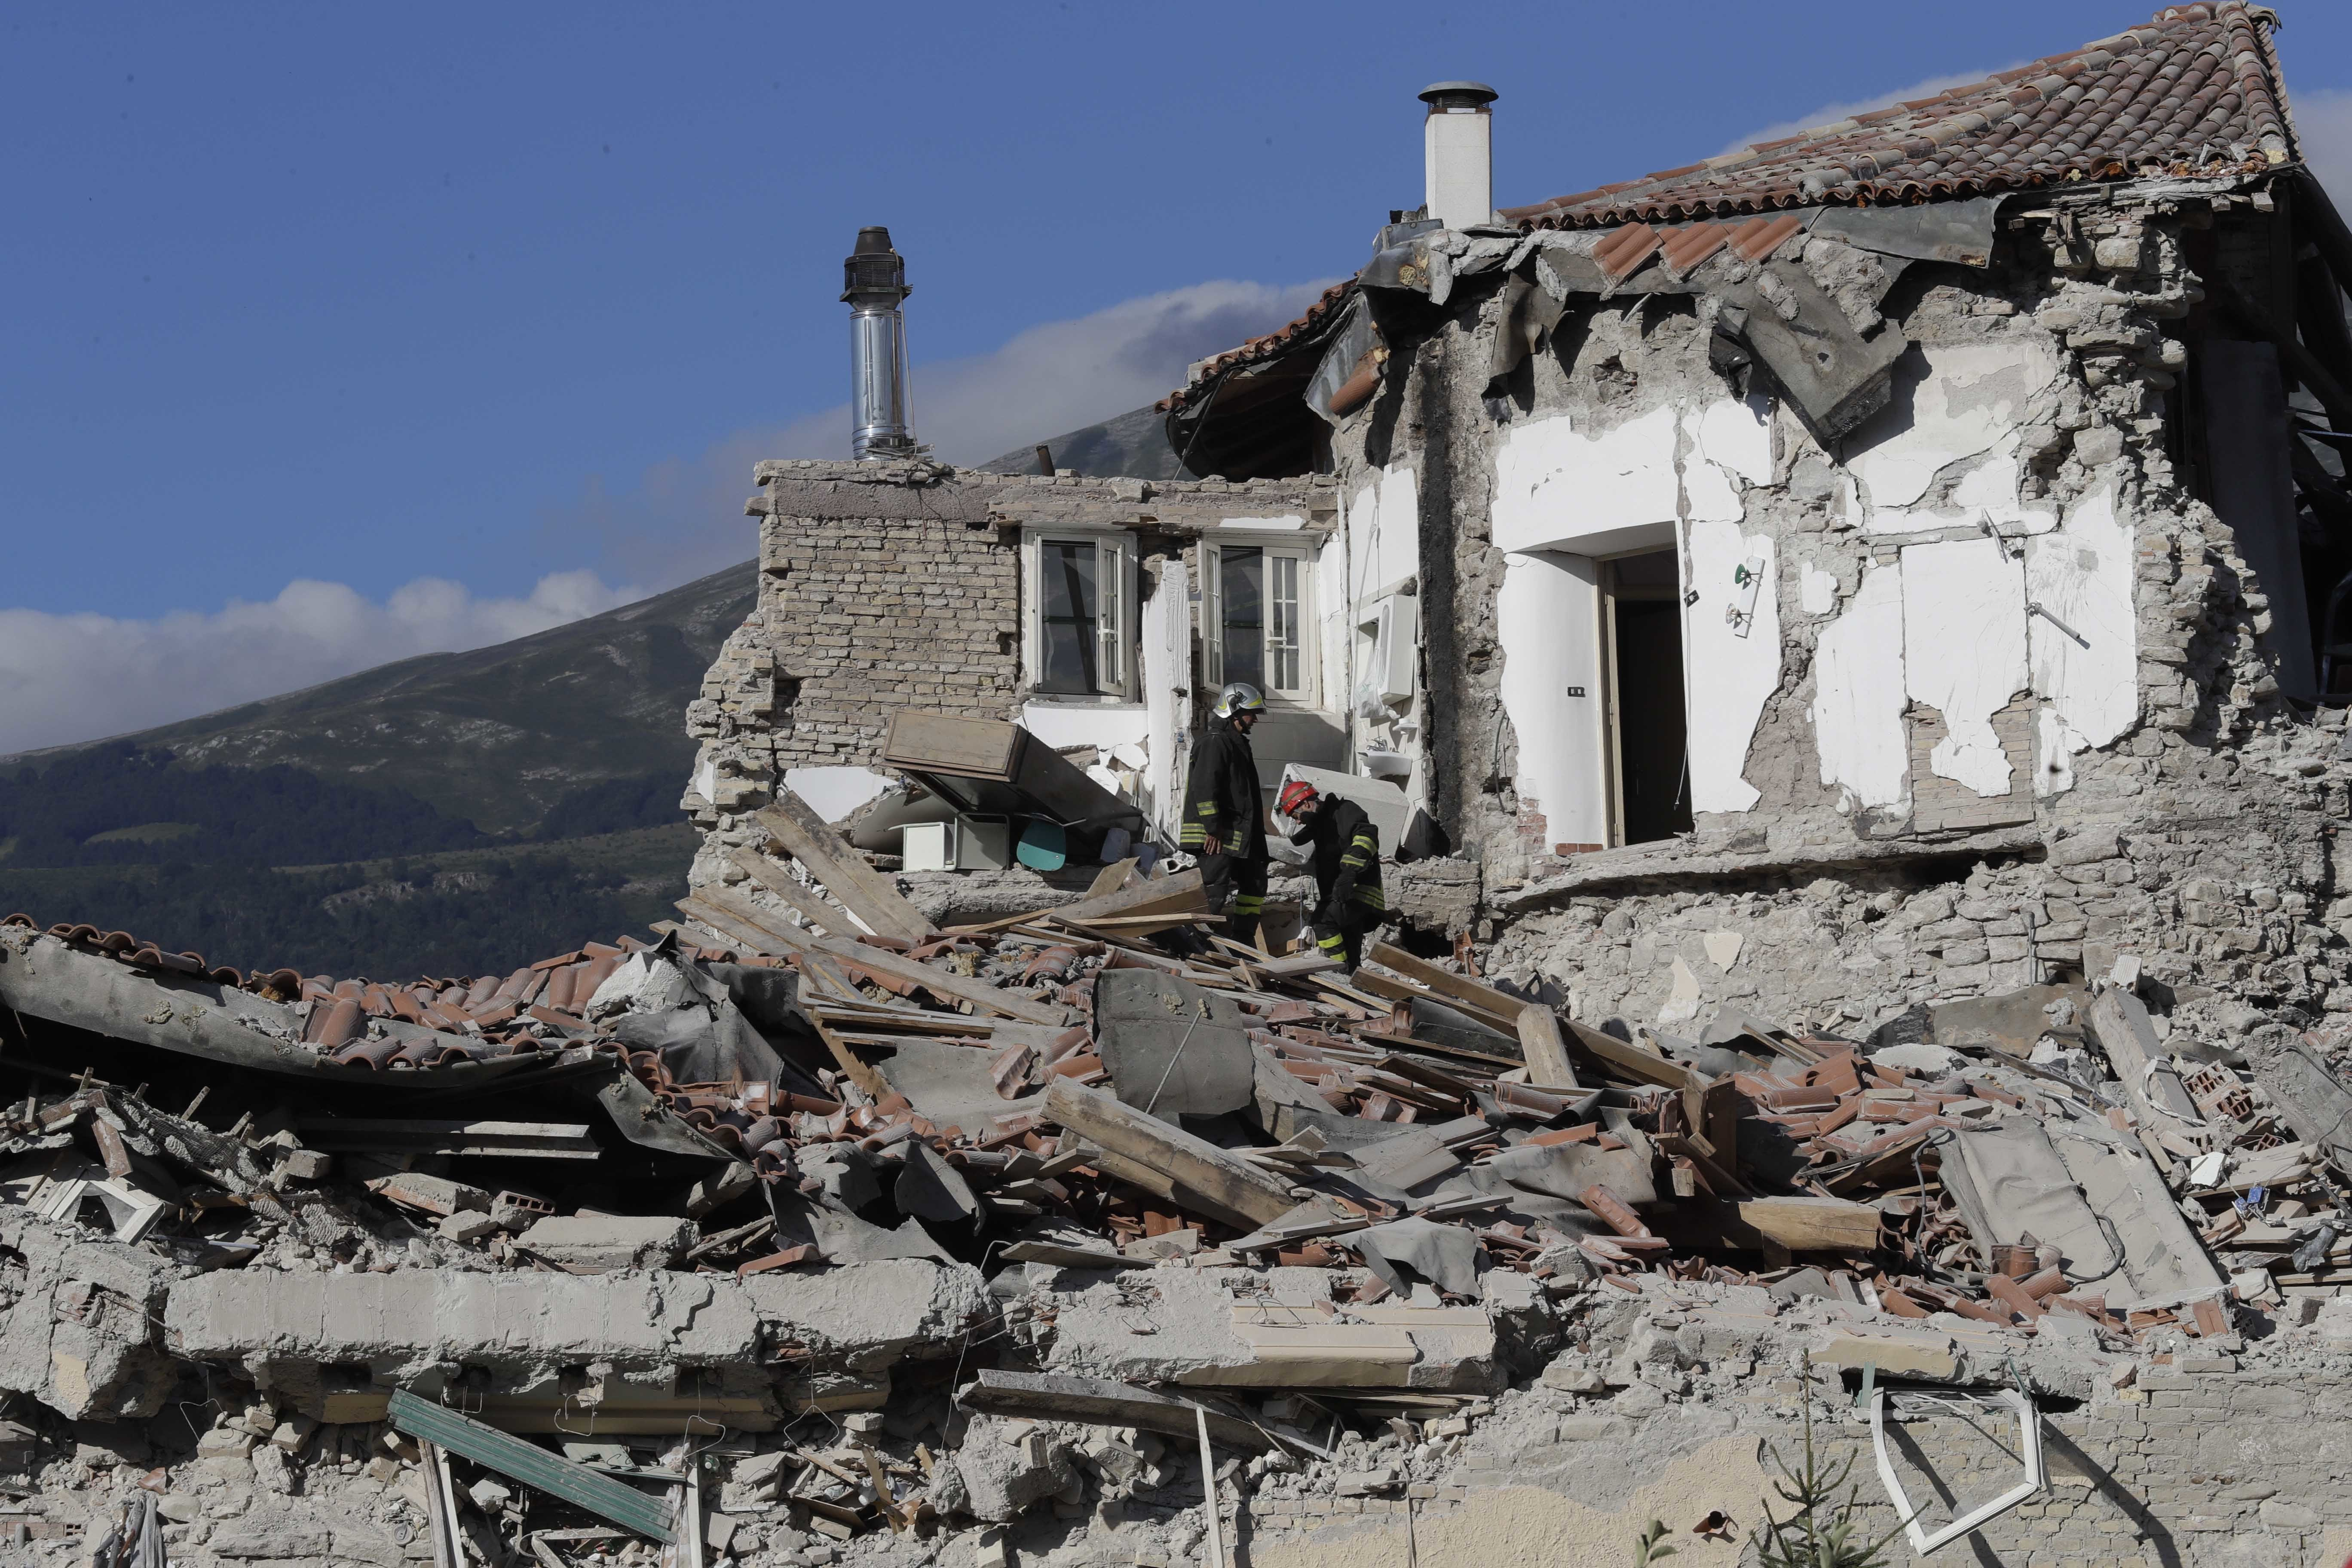 Why did Amatrice suffer Earthquake in the center of Italy